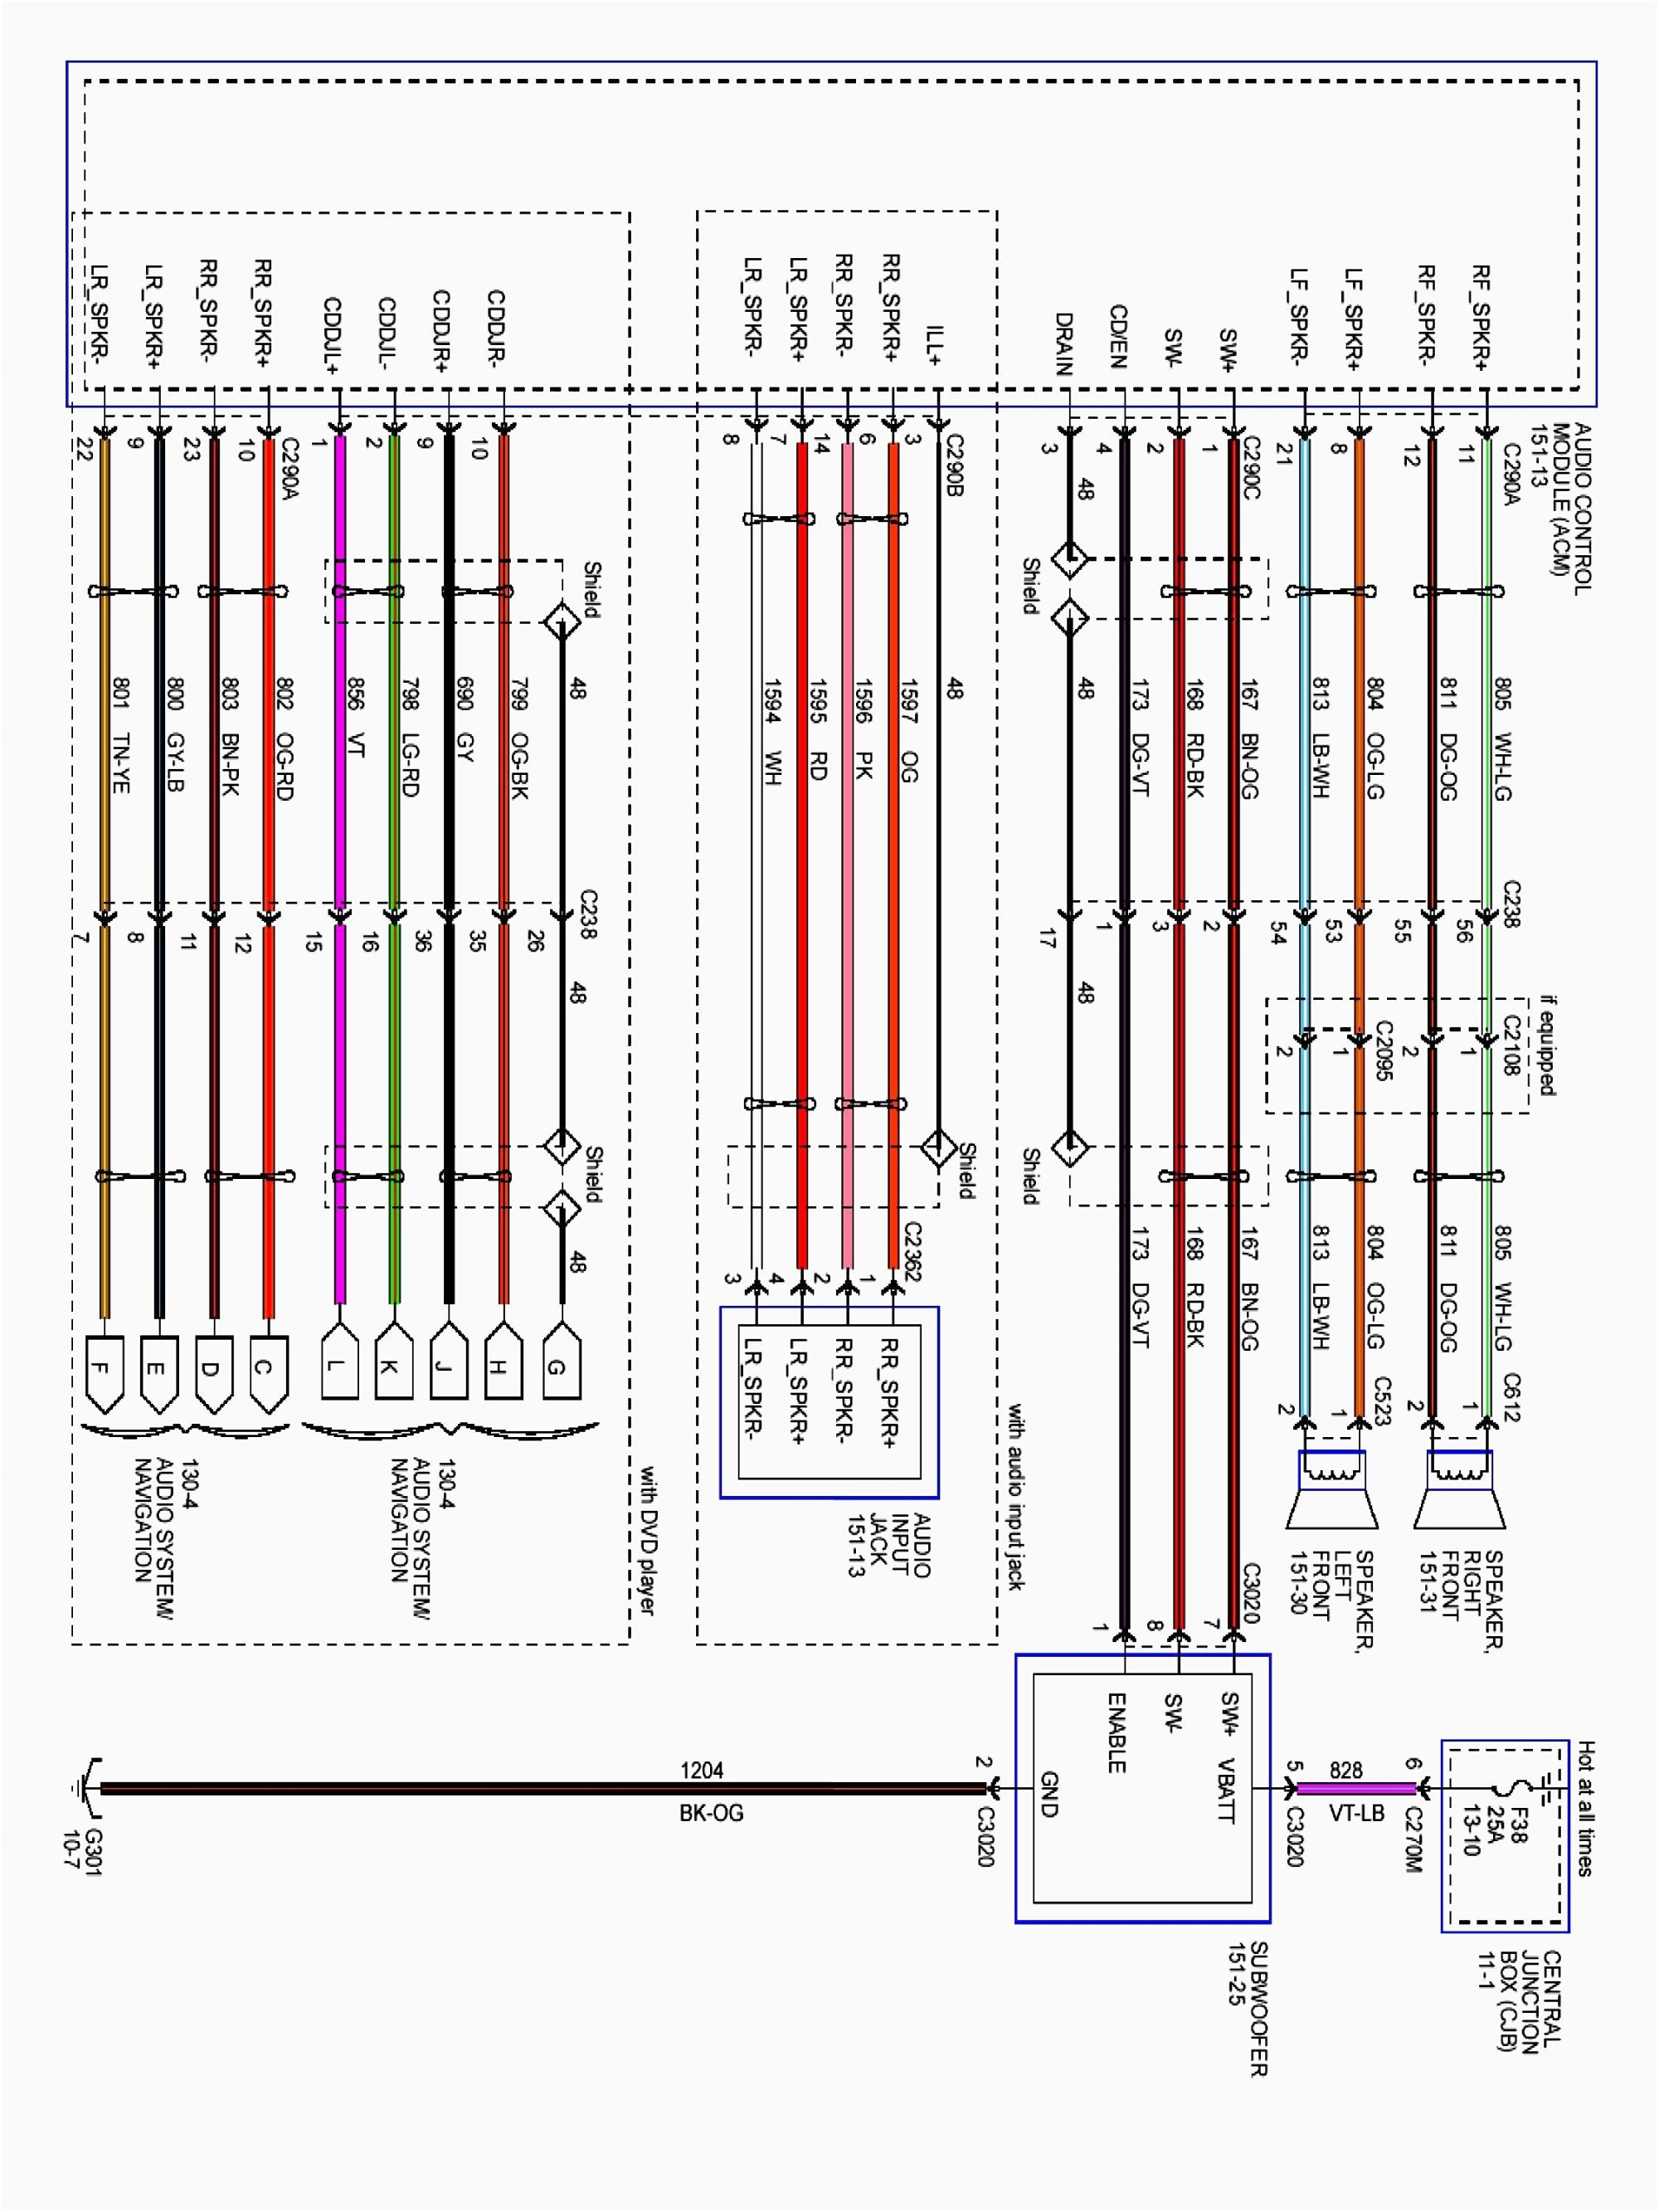 hight resolution of 2004 mini cooper stereo wiring wiring library rh 88 dirtytalk camgirls de wiring diagram 2003 mini cooper 2013 mini cooper wiring diagram